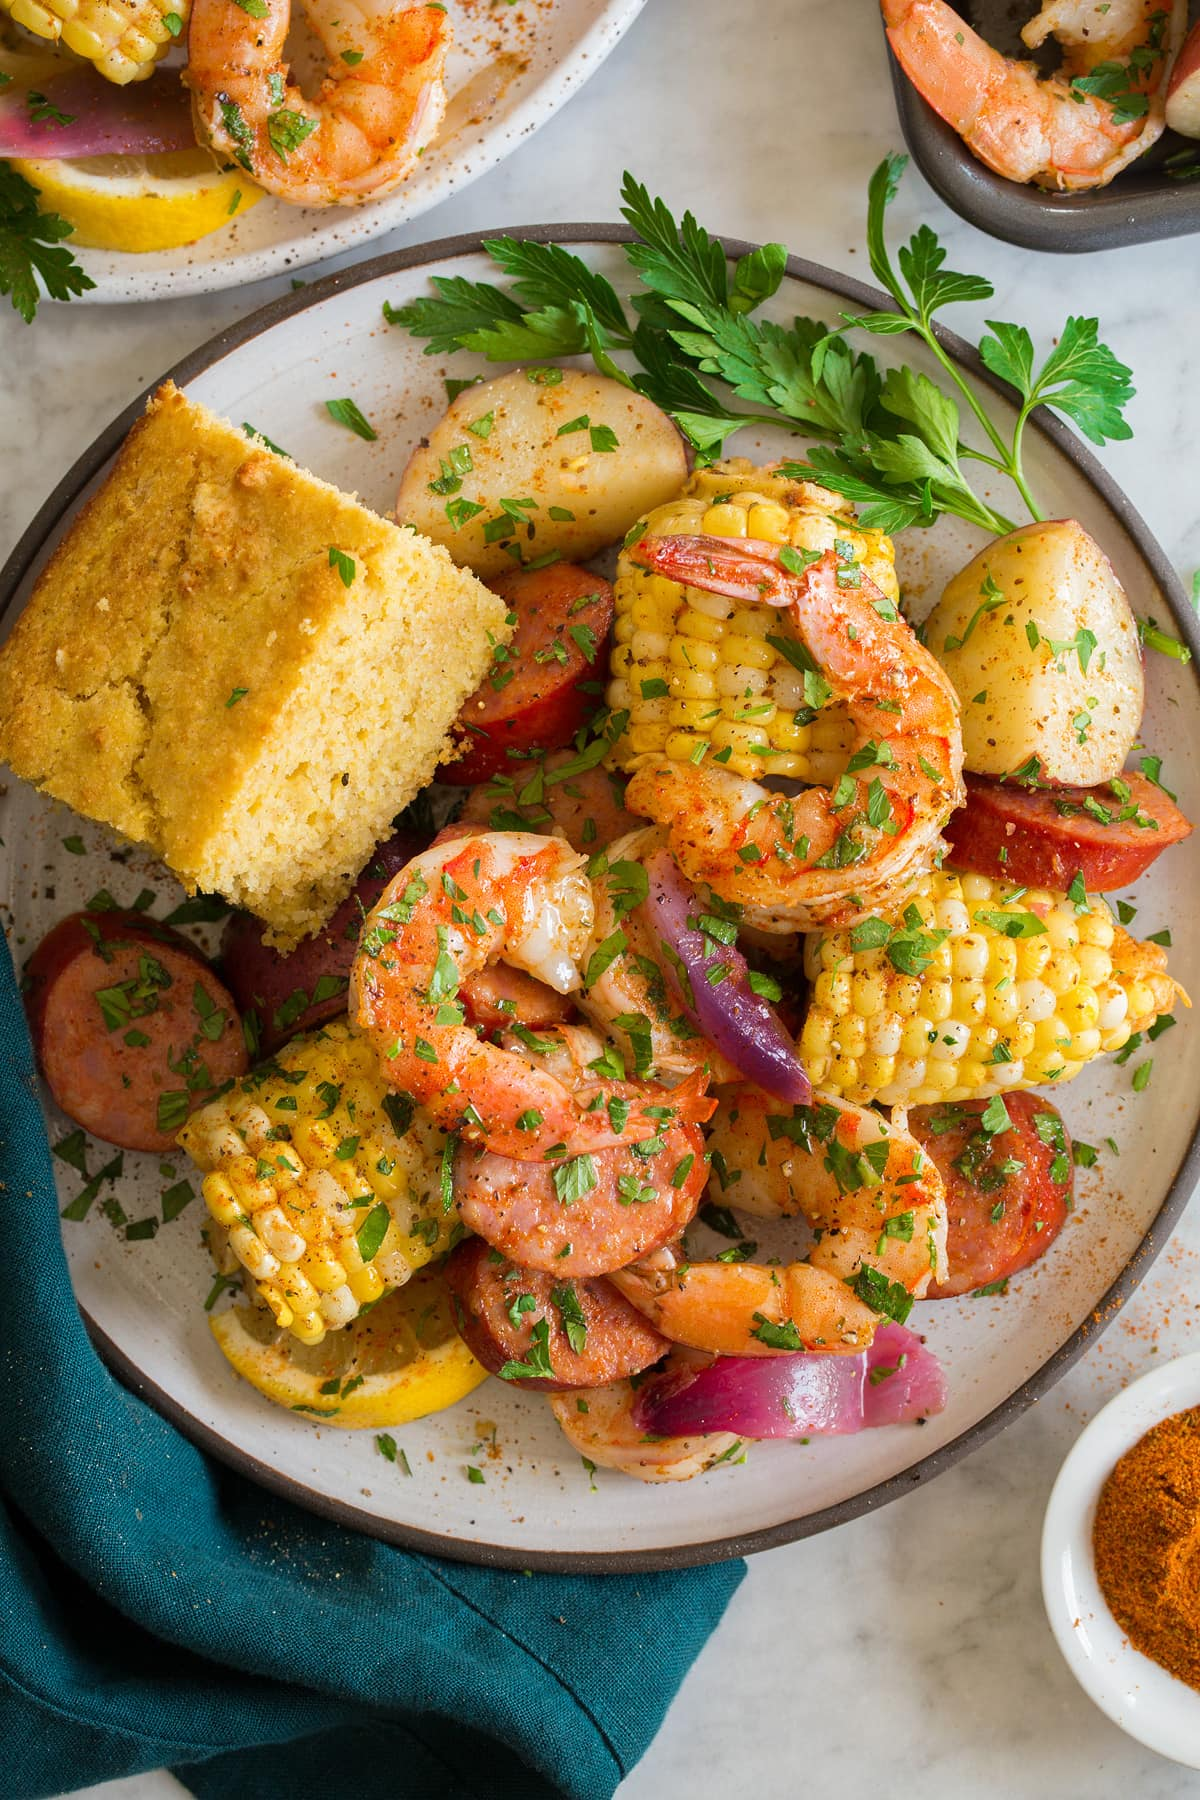 Image showing single serving of shrimp boil on a white plate with a serving suggestion of a side of cornbread.